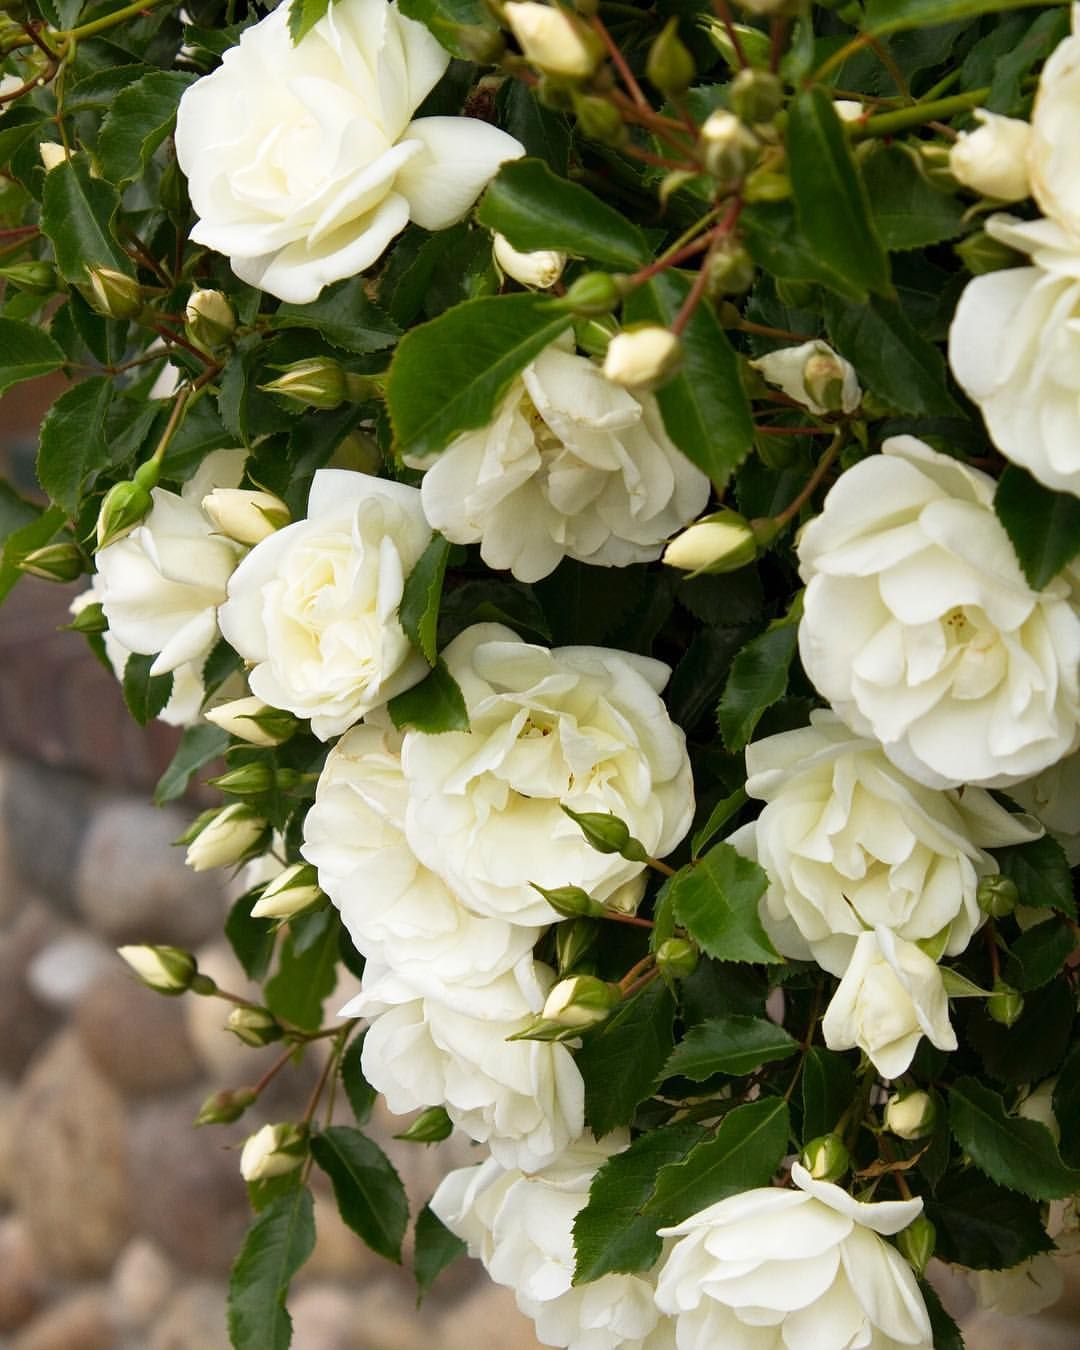 Monroviaplants On Instagram With Sparkling White Blooms The